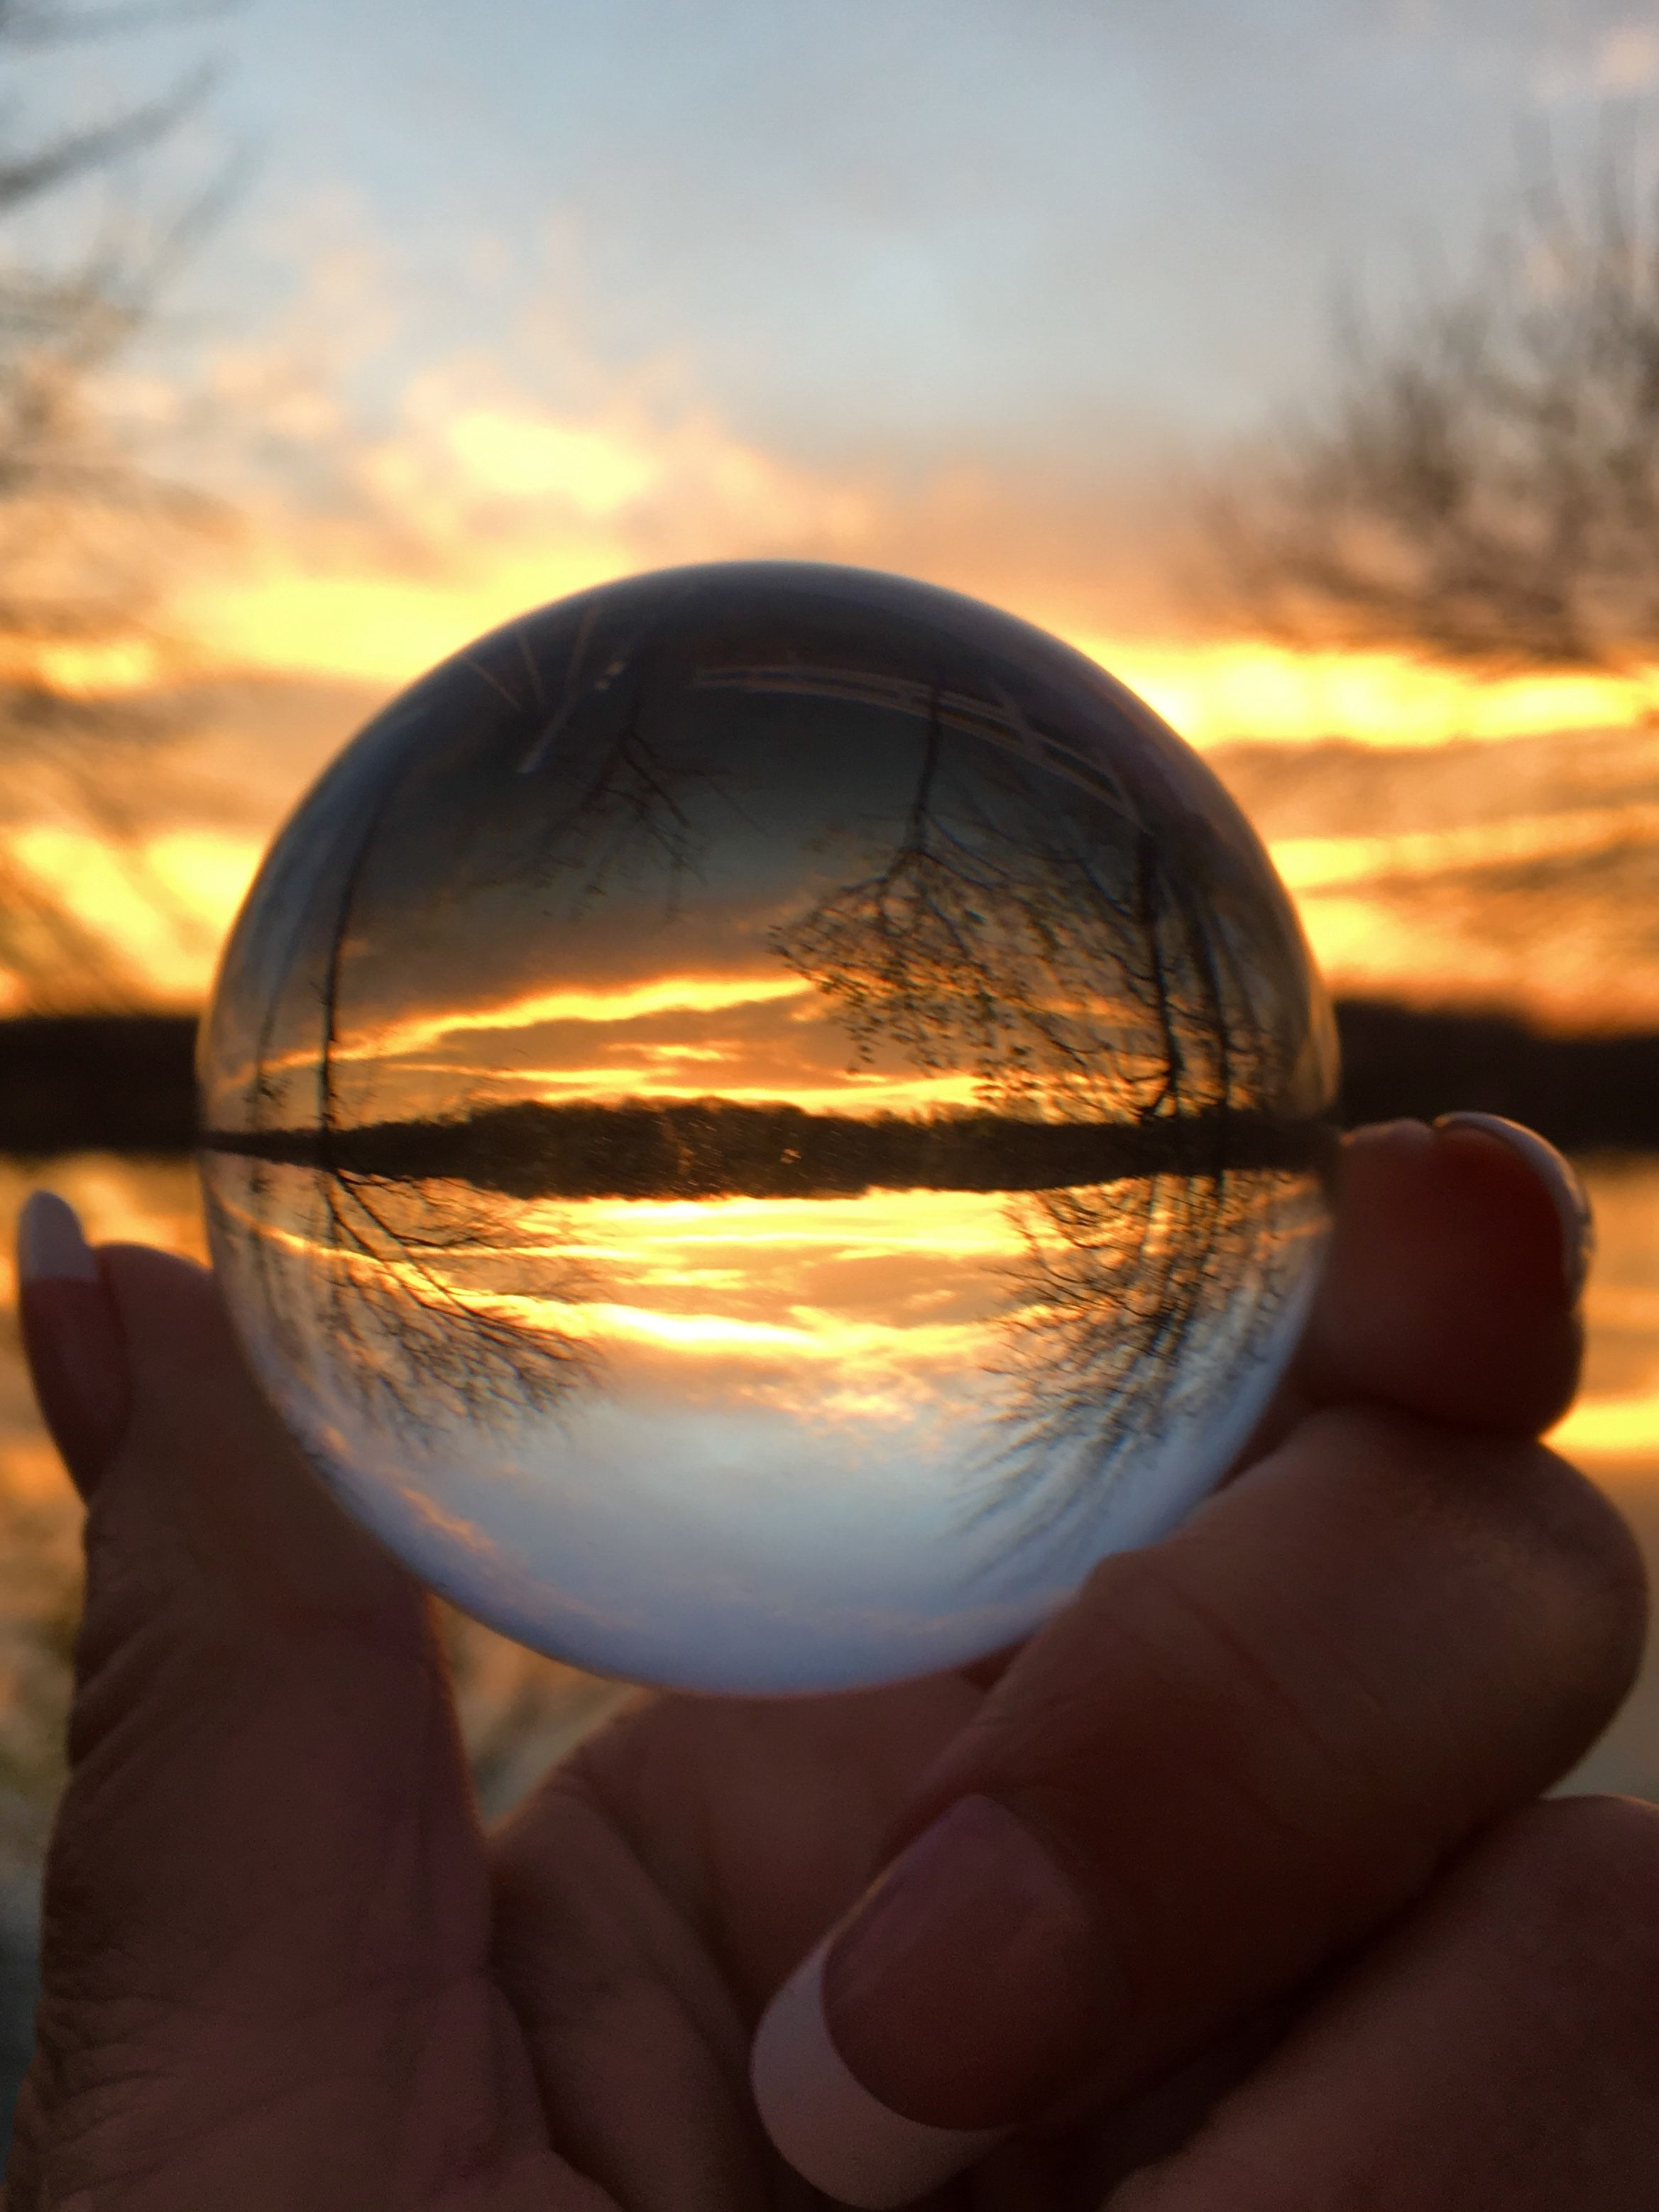 sunset in a crystal ball